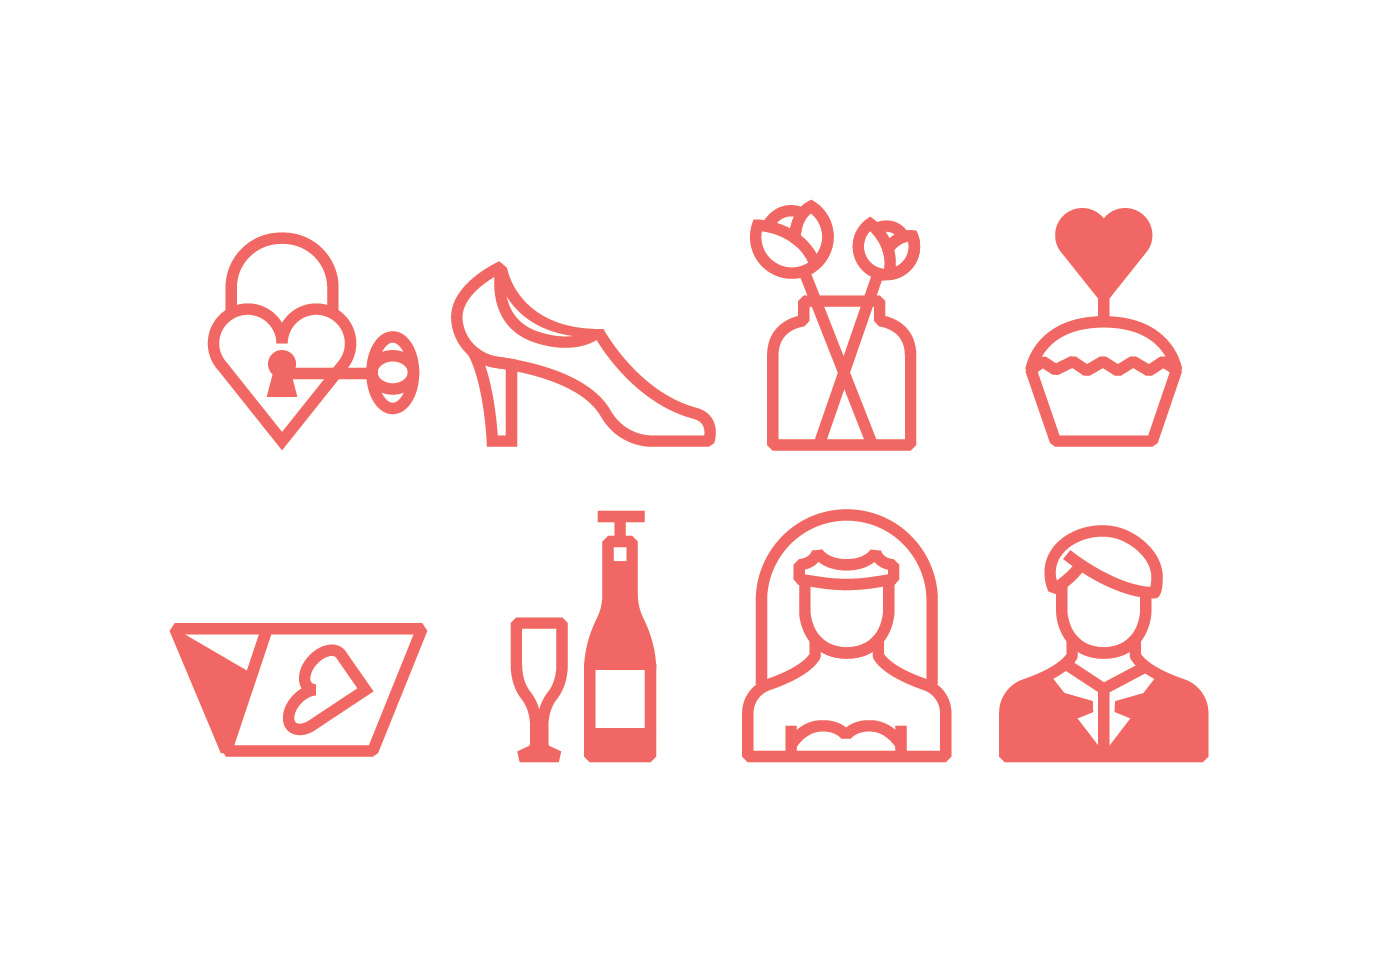 Linear Wedding Ceremony Icons - Download Free Vector Art, Stock ...